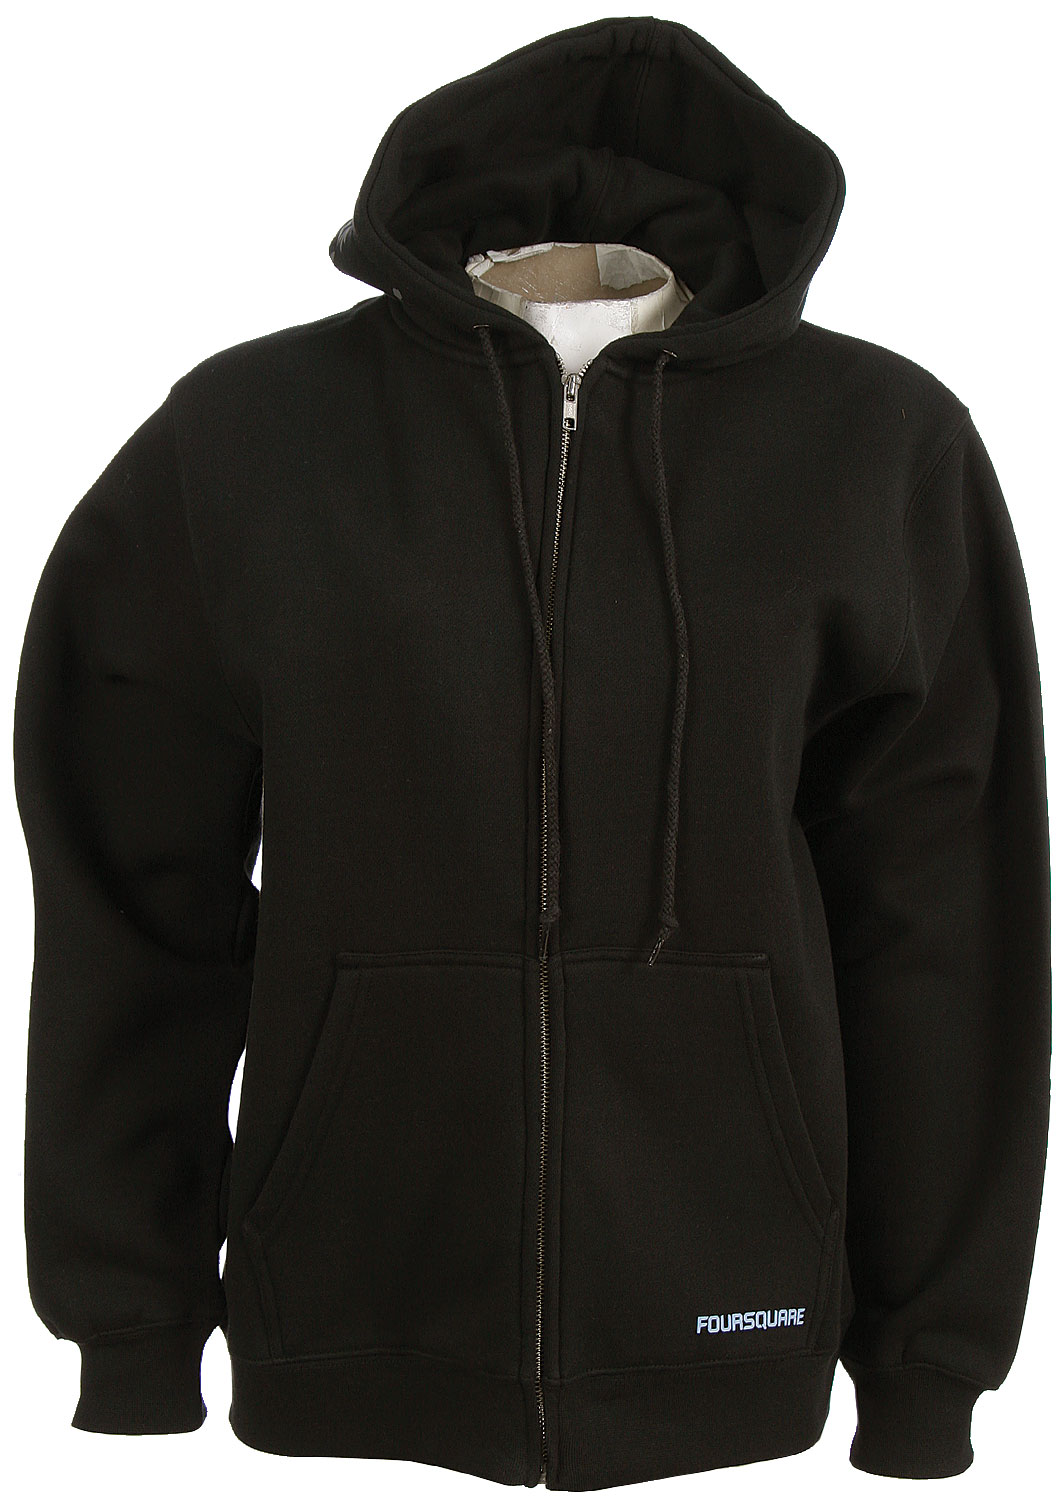 Snowboard The Foursquare Nature Fullzip Women's Hooded Sweatshirt. Another great hoodie from Foursquare. 80% cotton 20% polyester 360 gm. - $20.96